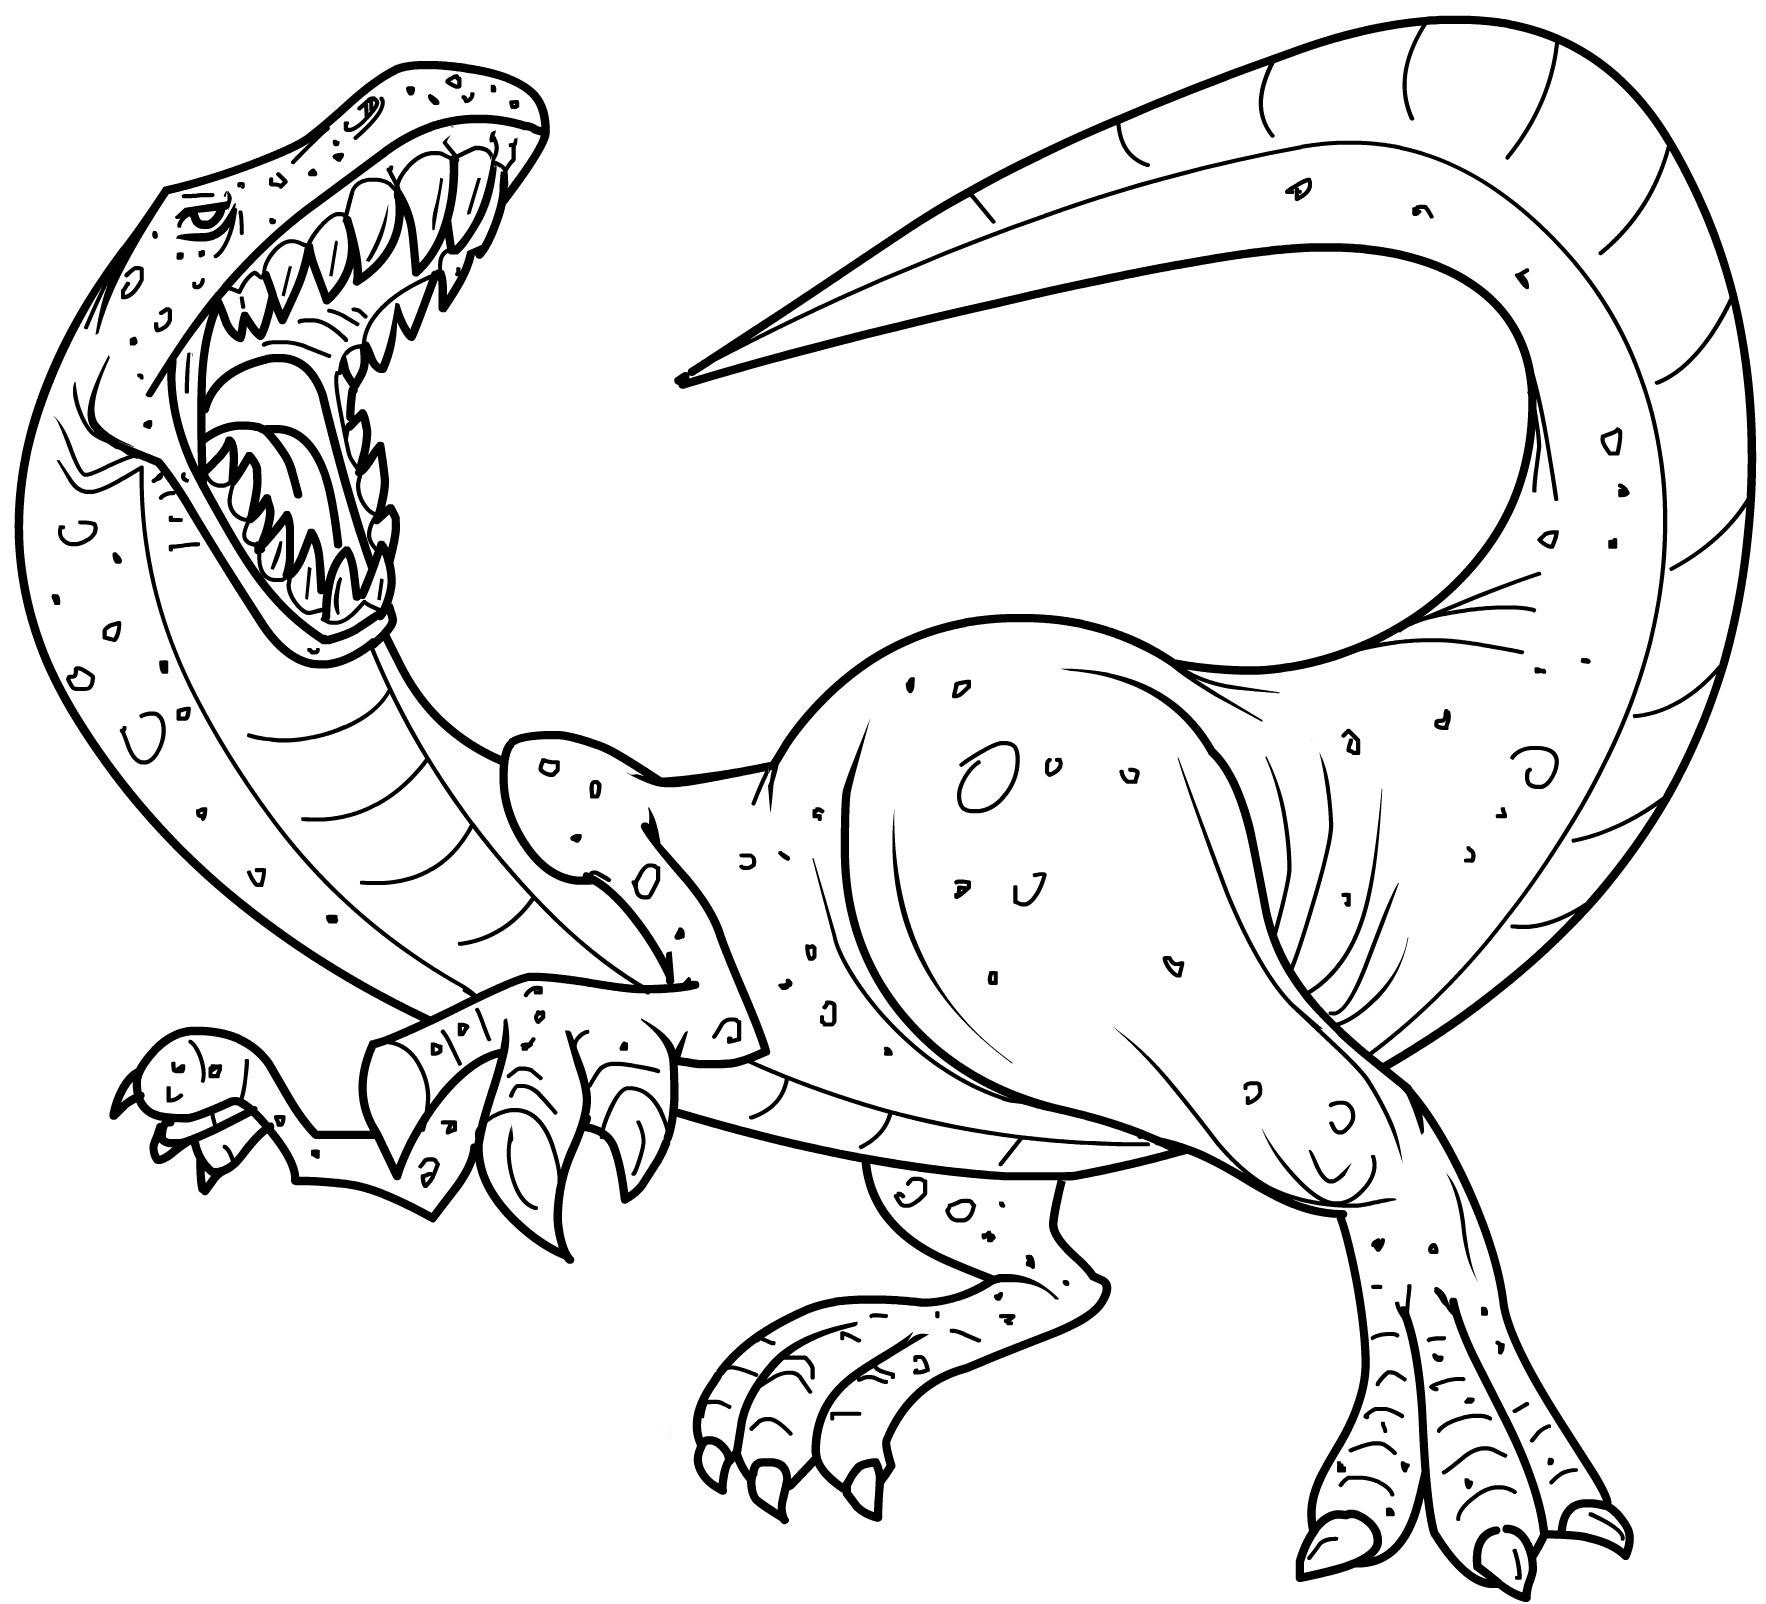 Dinosaurs coloring page